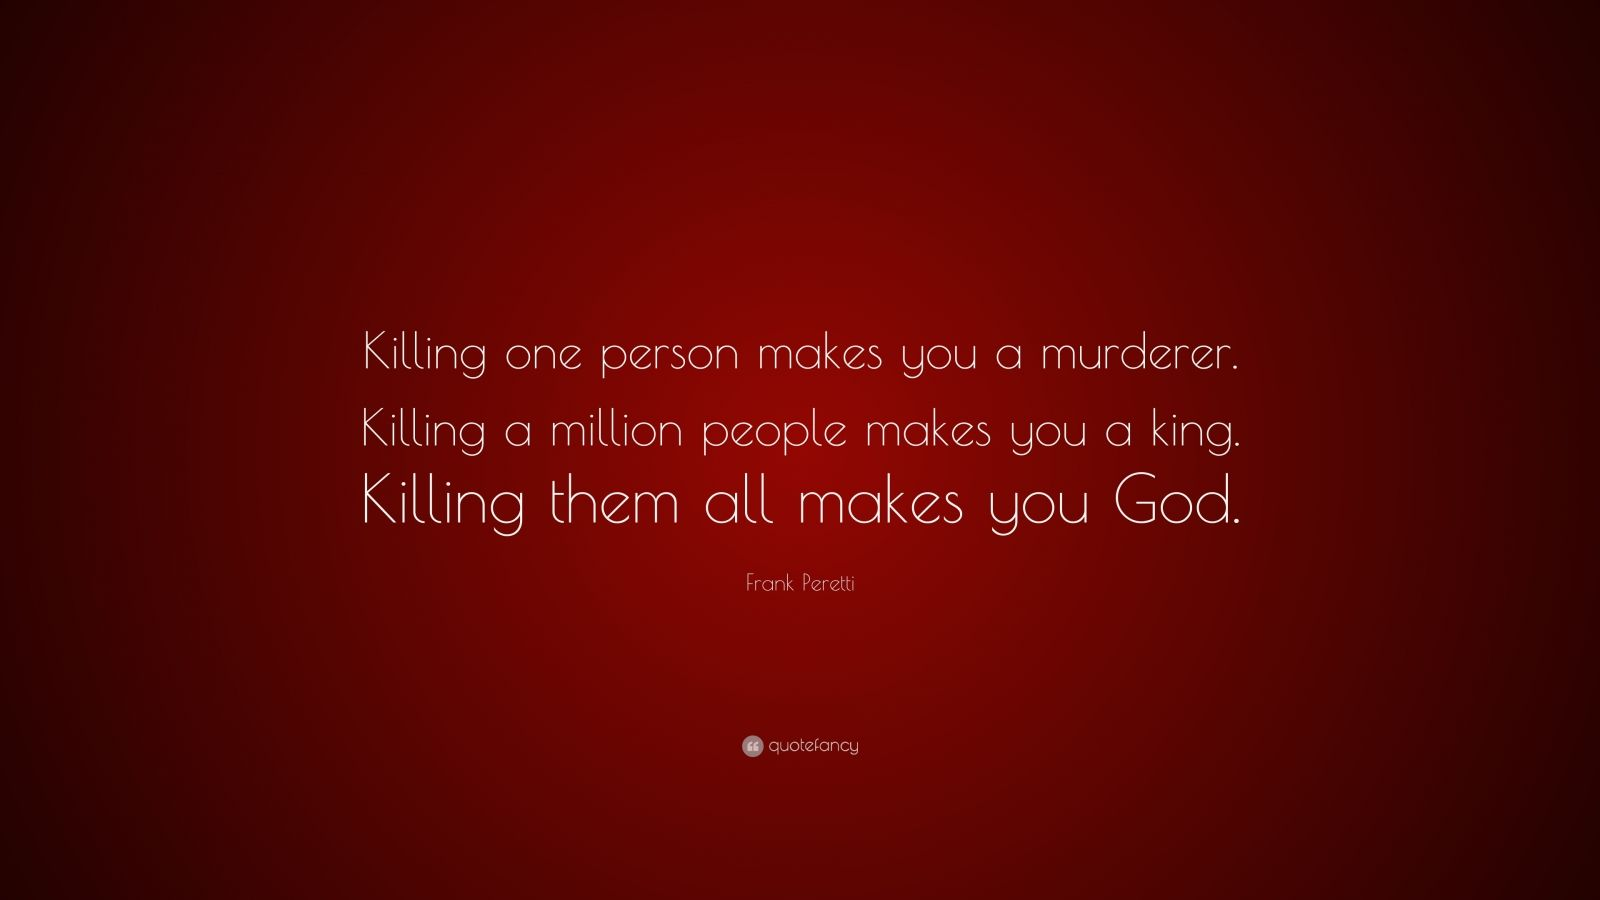 """Frank Peretti Quote: """"Killing one person makes you a murderer. Killing a million people makes you a king. Killing them all makes you God."""""""